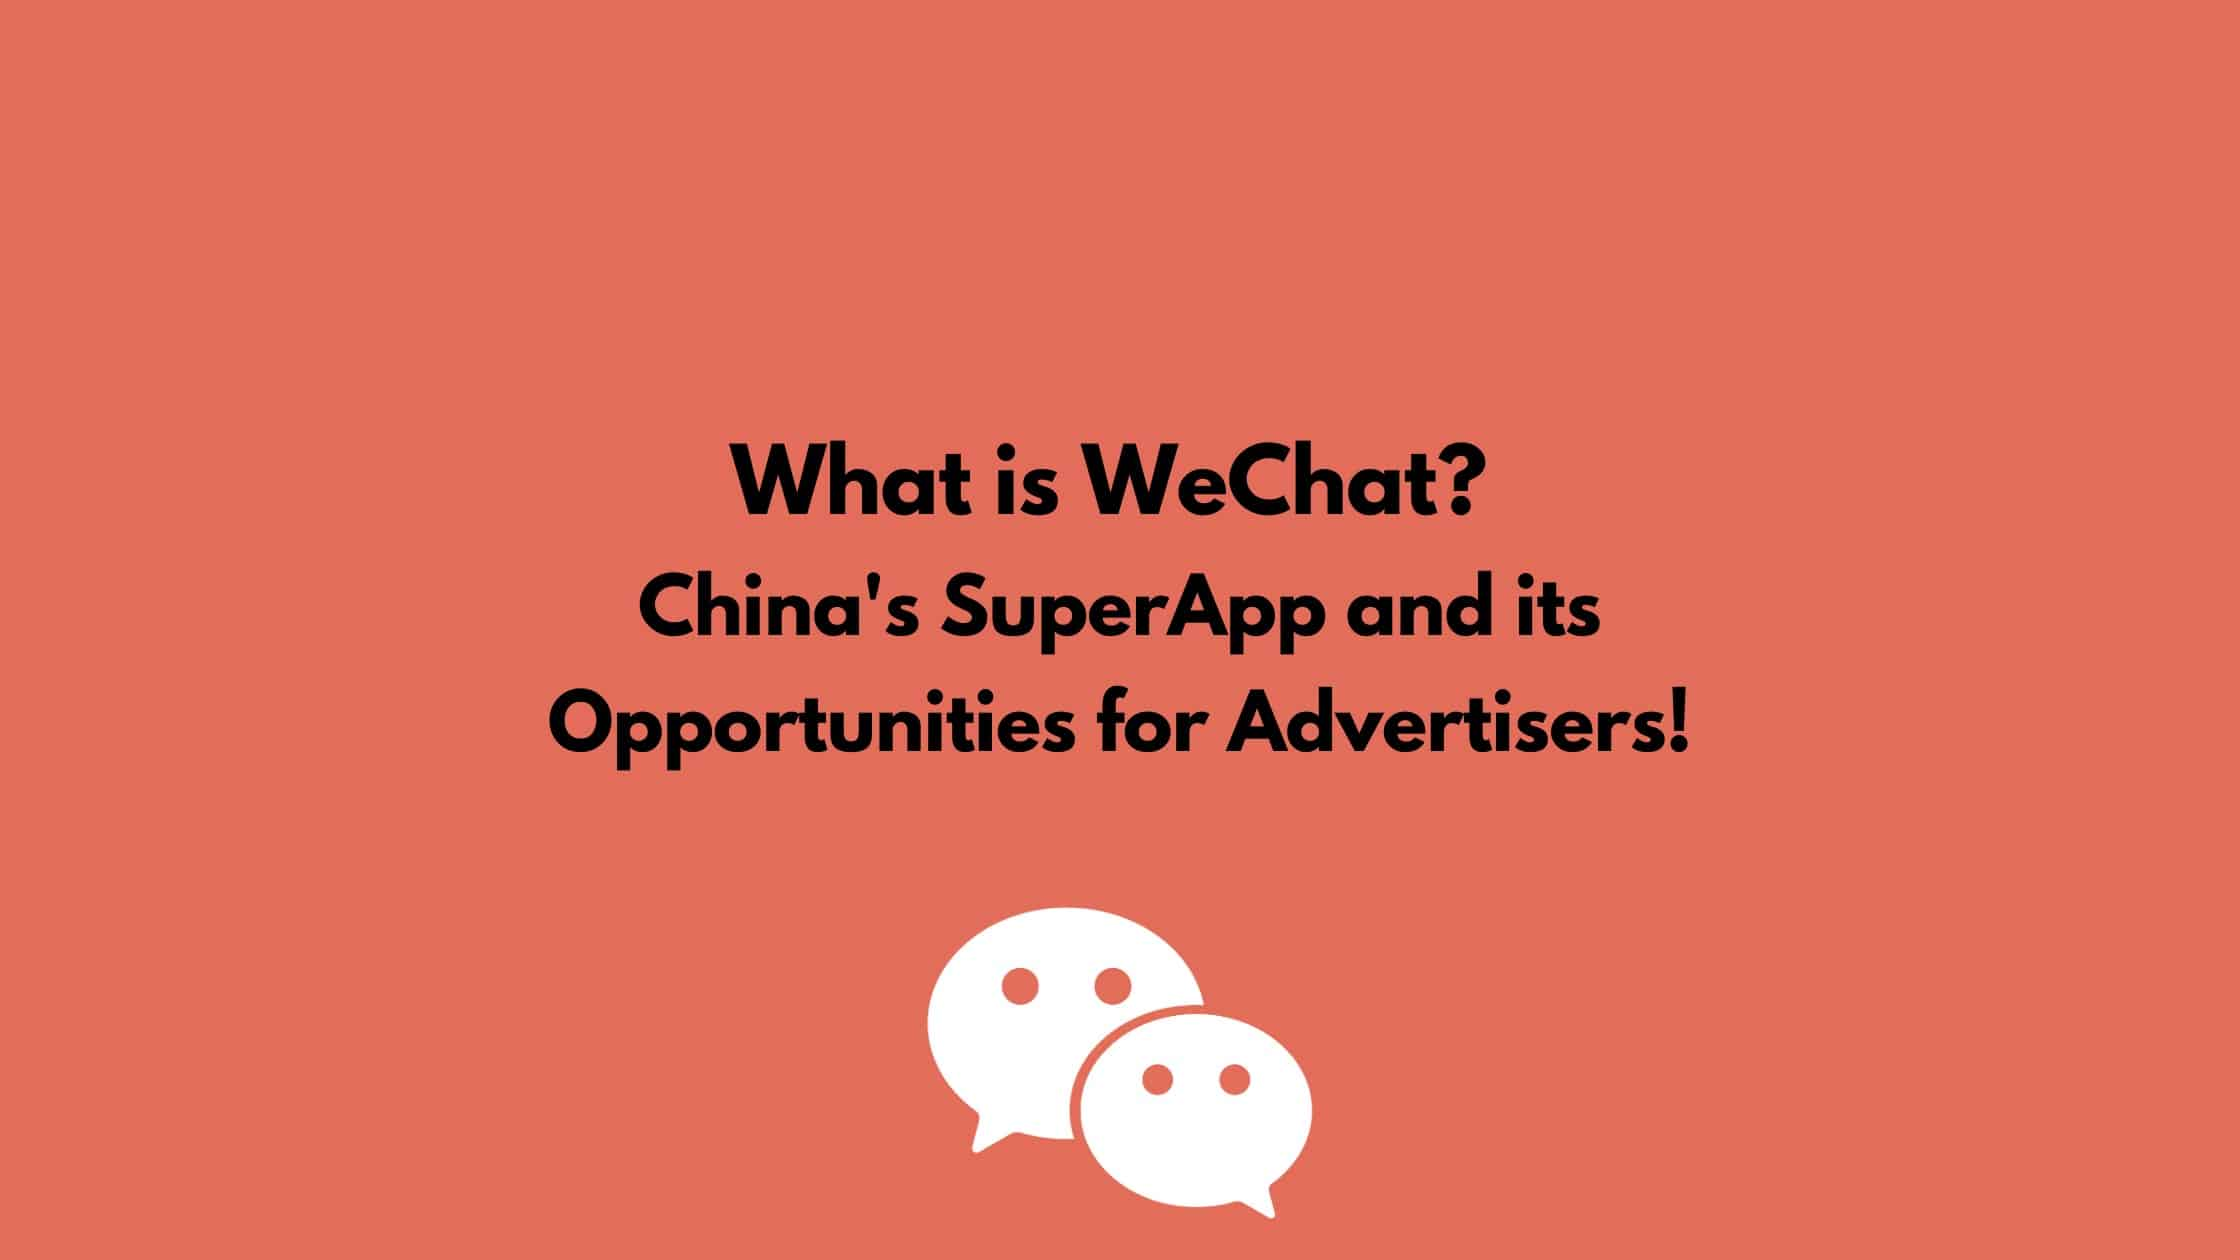 WeChat Advertising Strategy: Top Tips and Opportunities